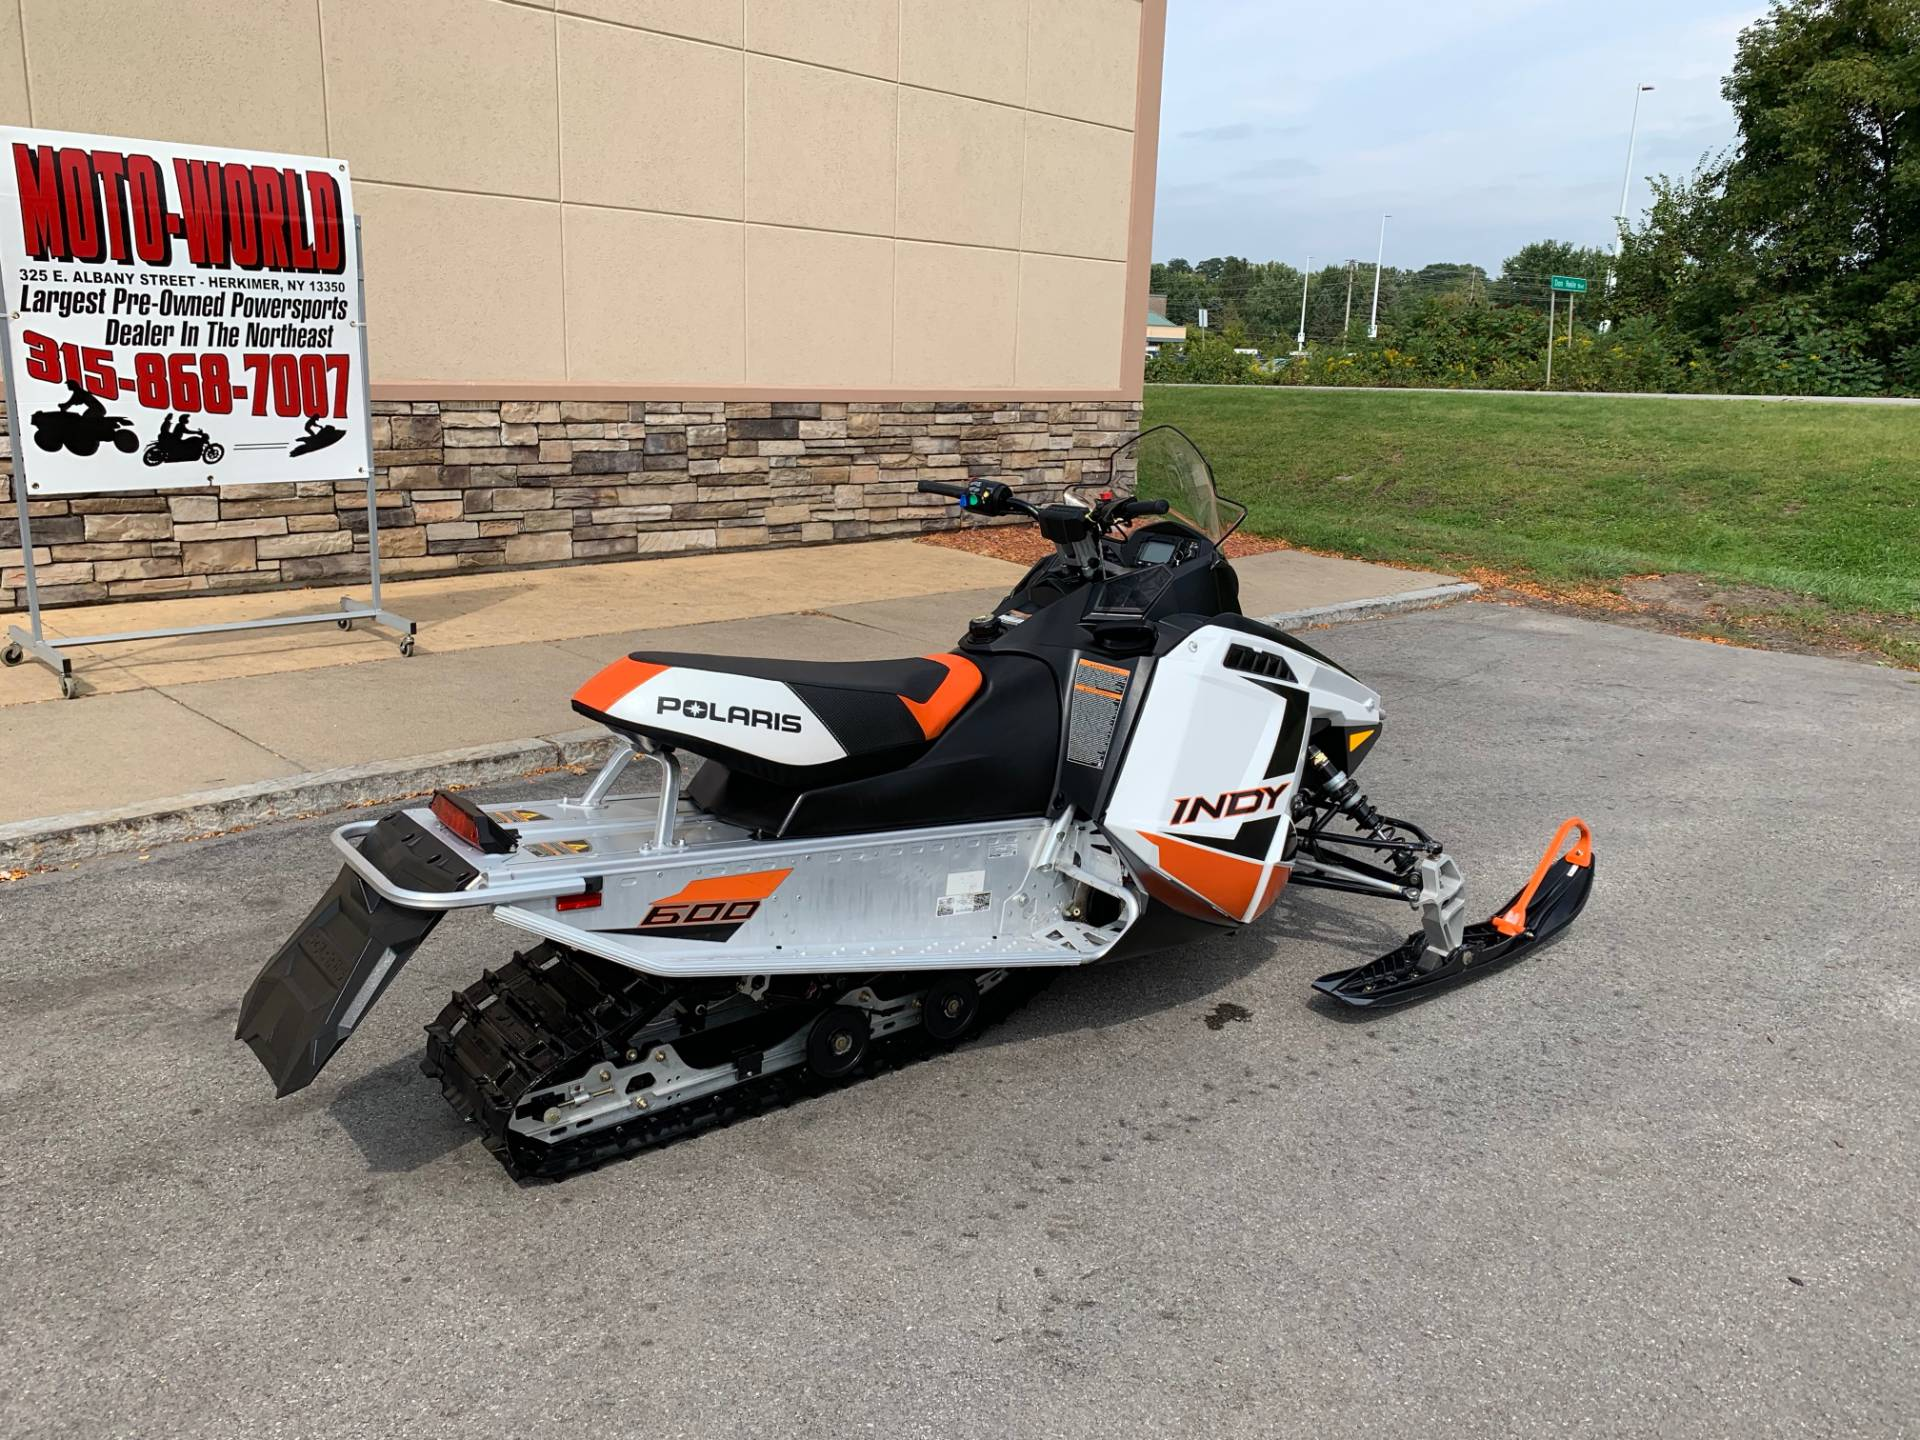 2019 Polaris 600 INDY 121 ES in Herkimer, New York - Photo 3